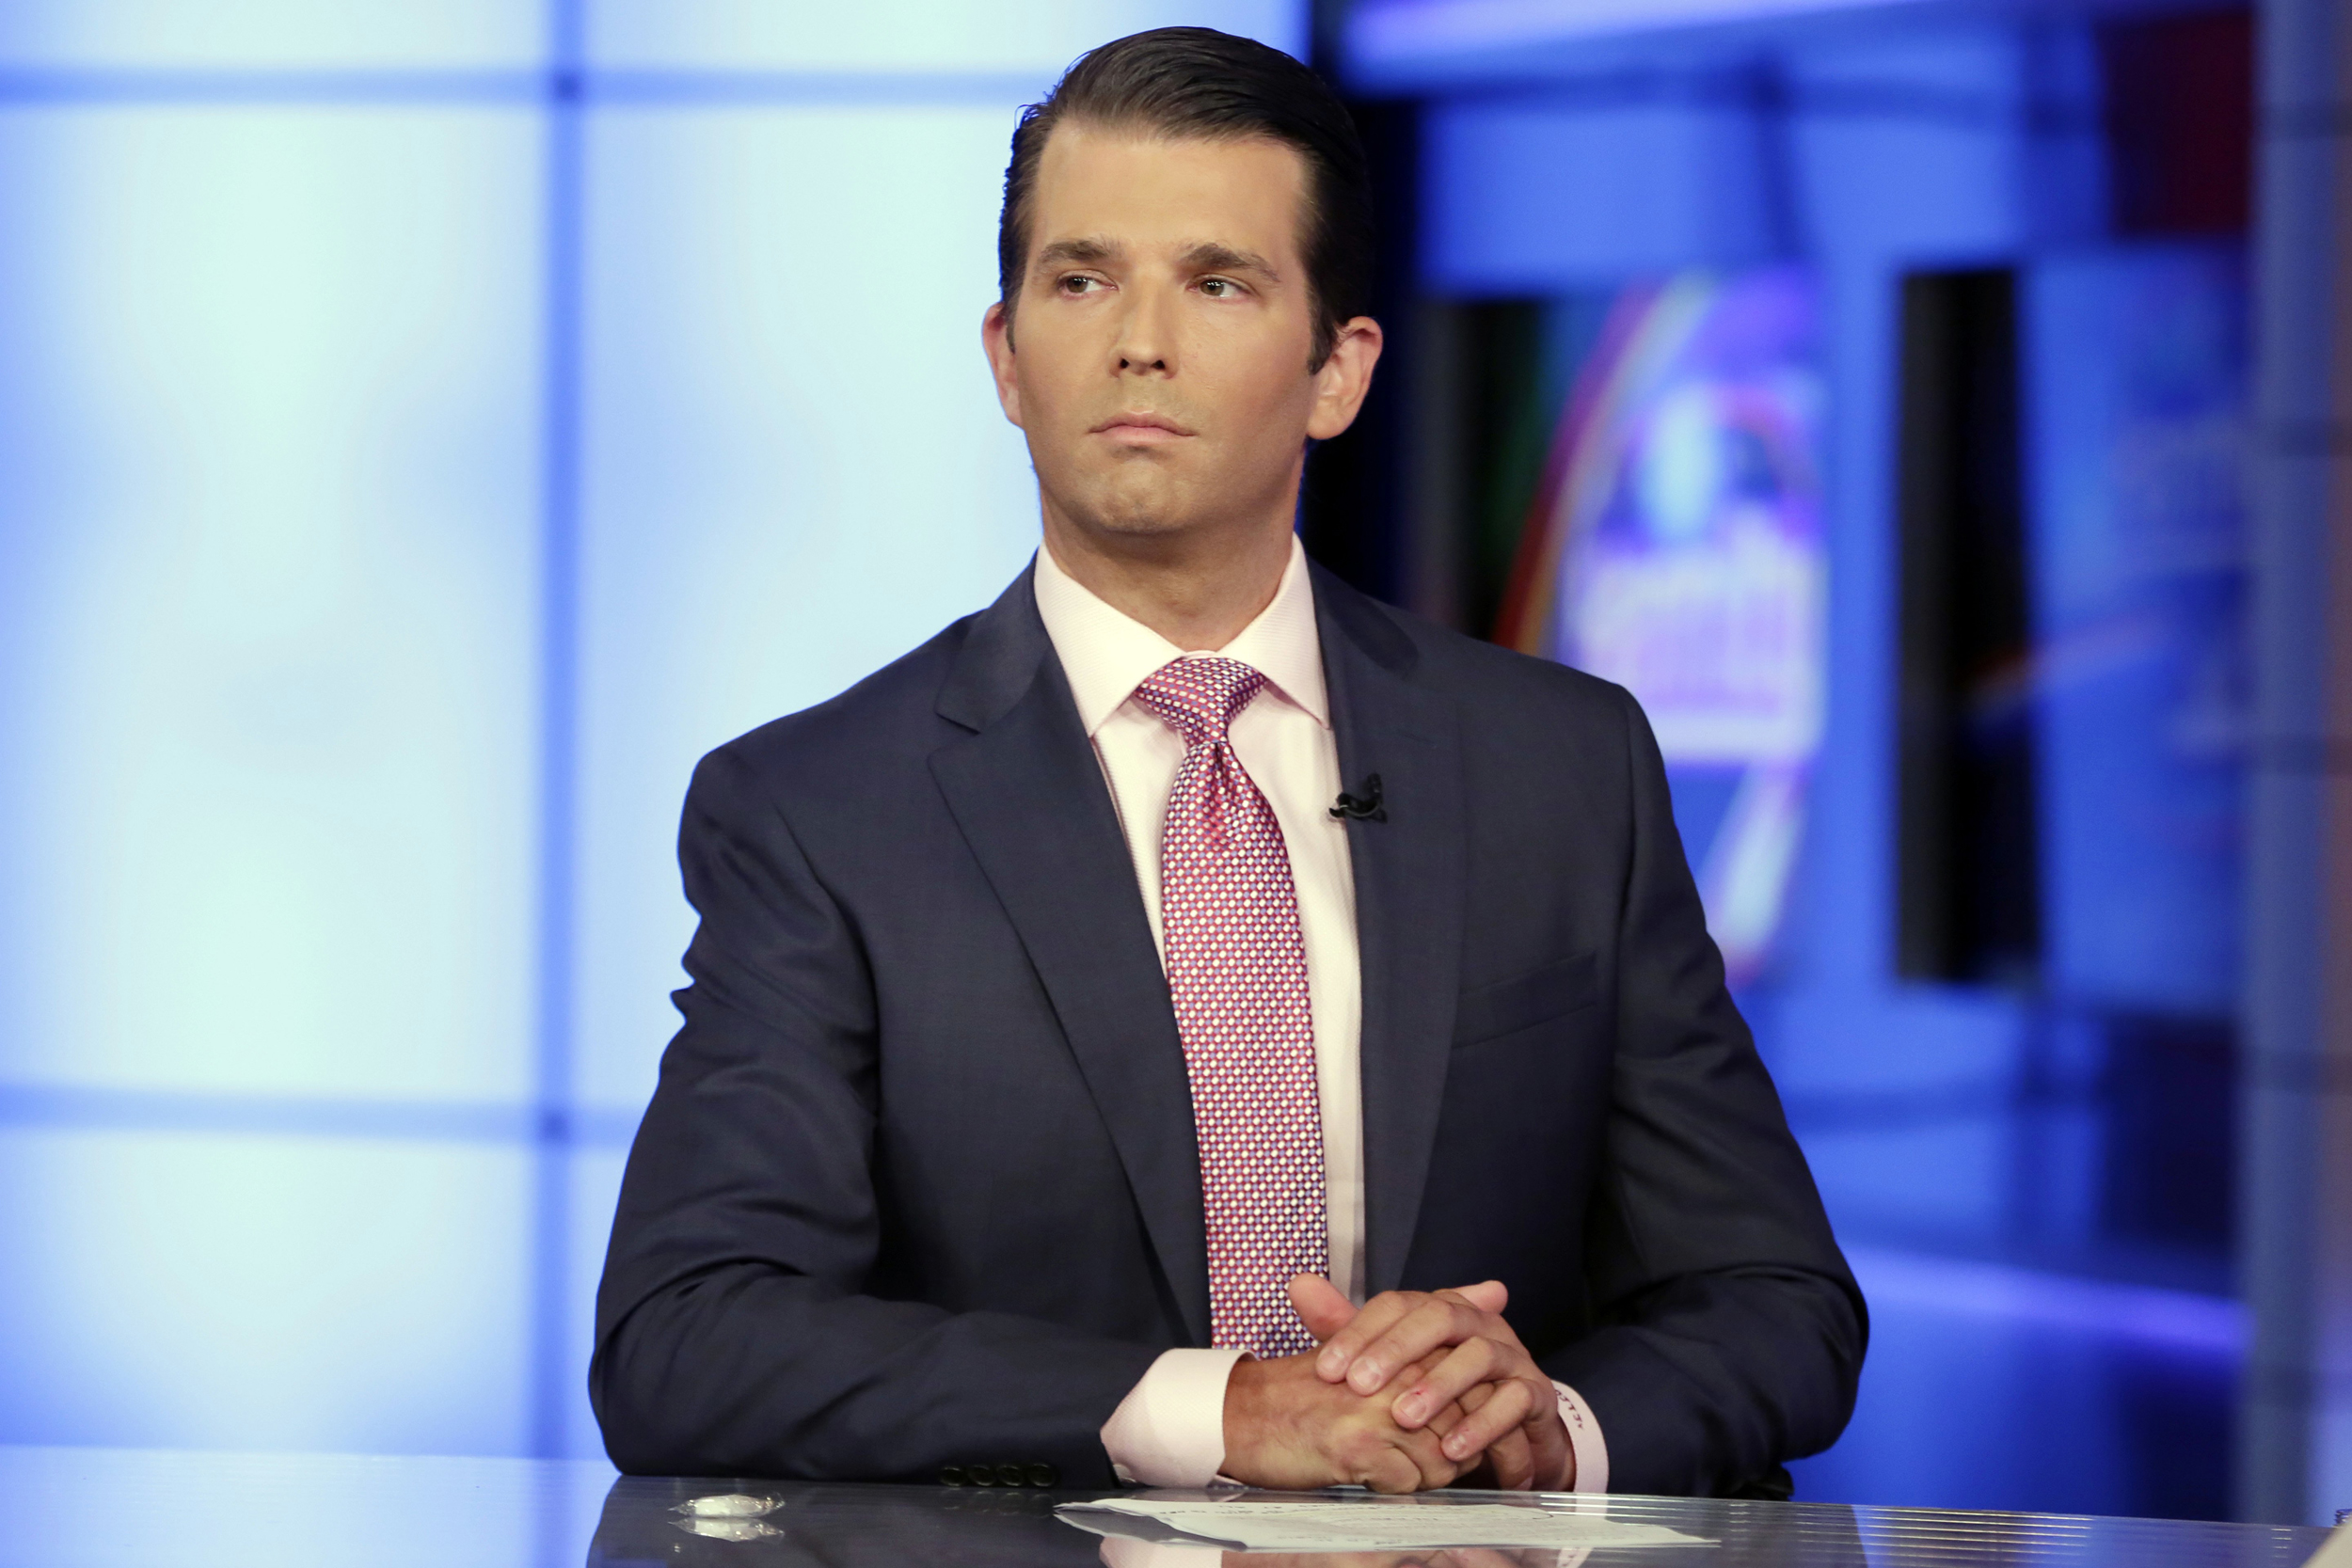 Image: Donald Trump Jr. is interviewed by host Sean Hannity